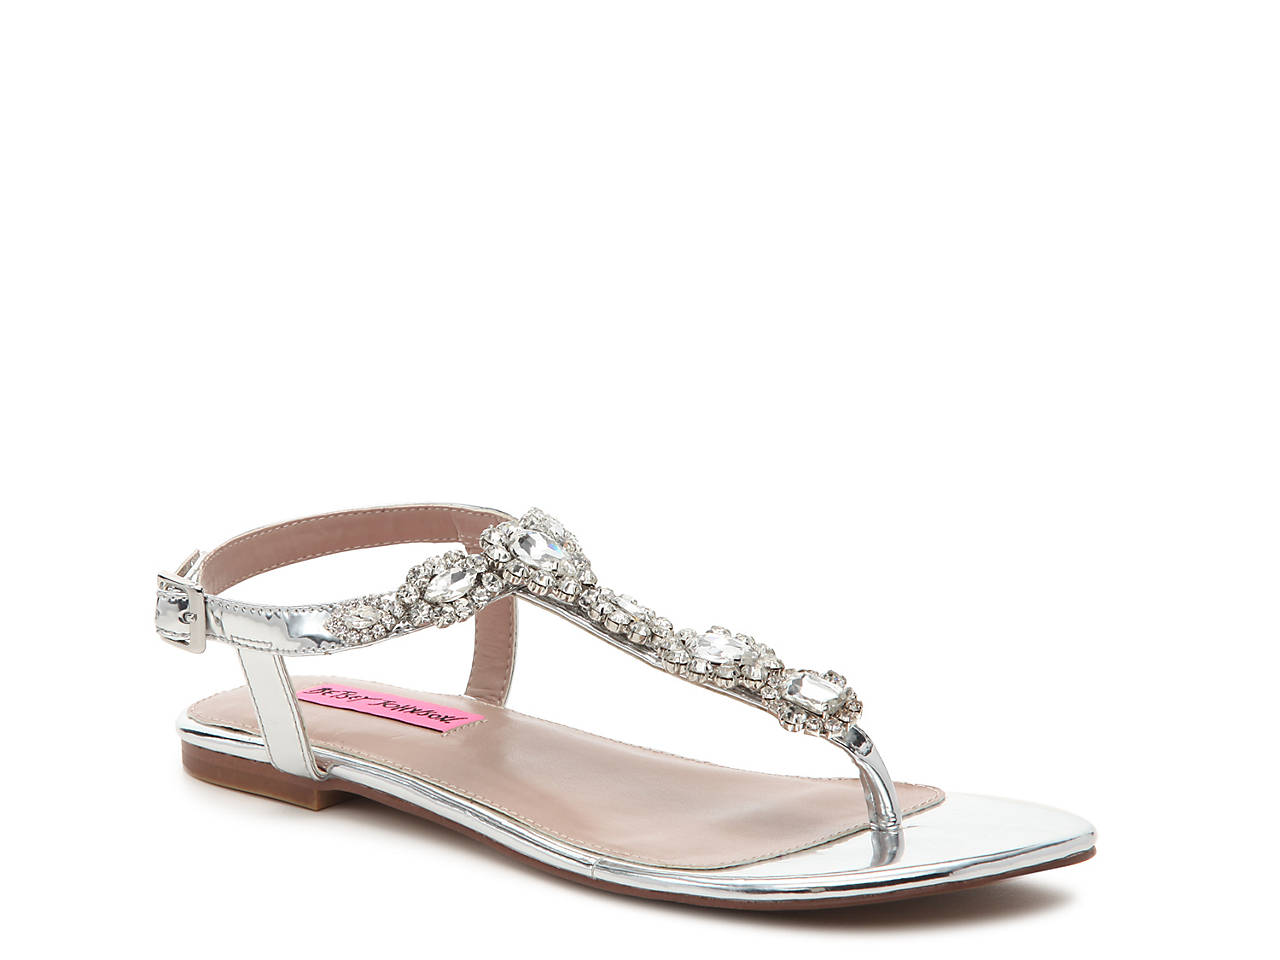 Betsey Johnson Crystal Flat Sandal Women s Shoes